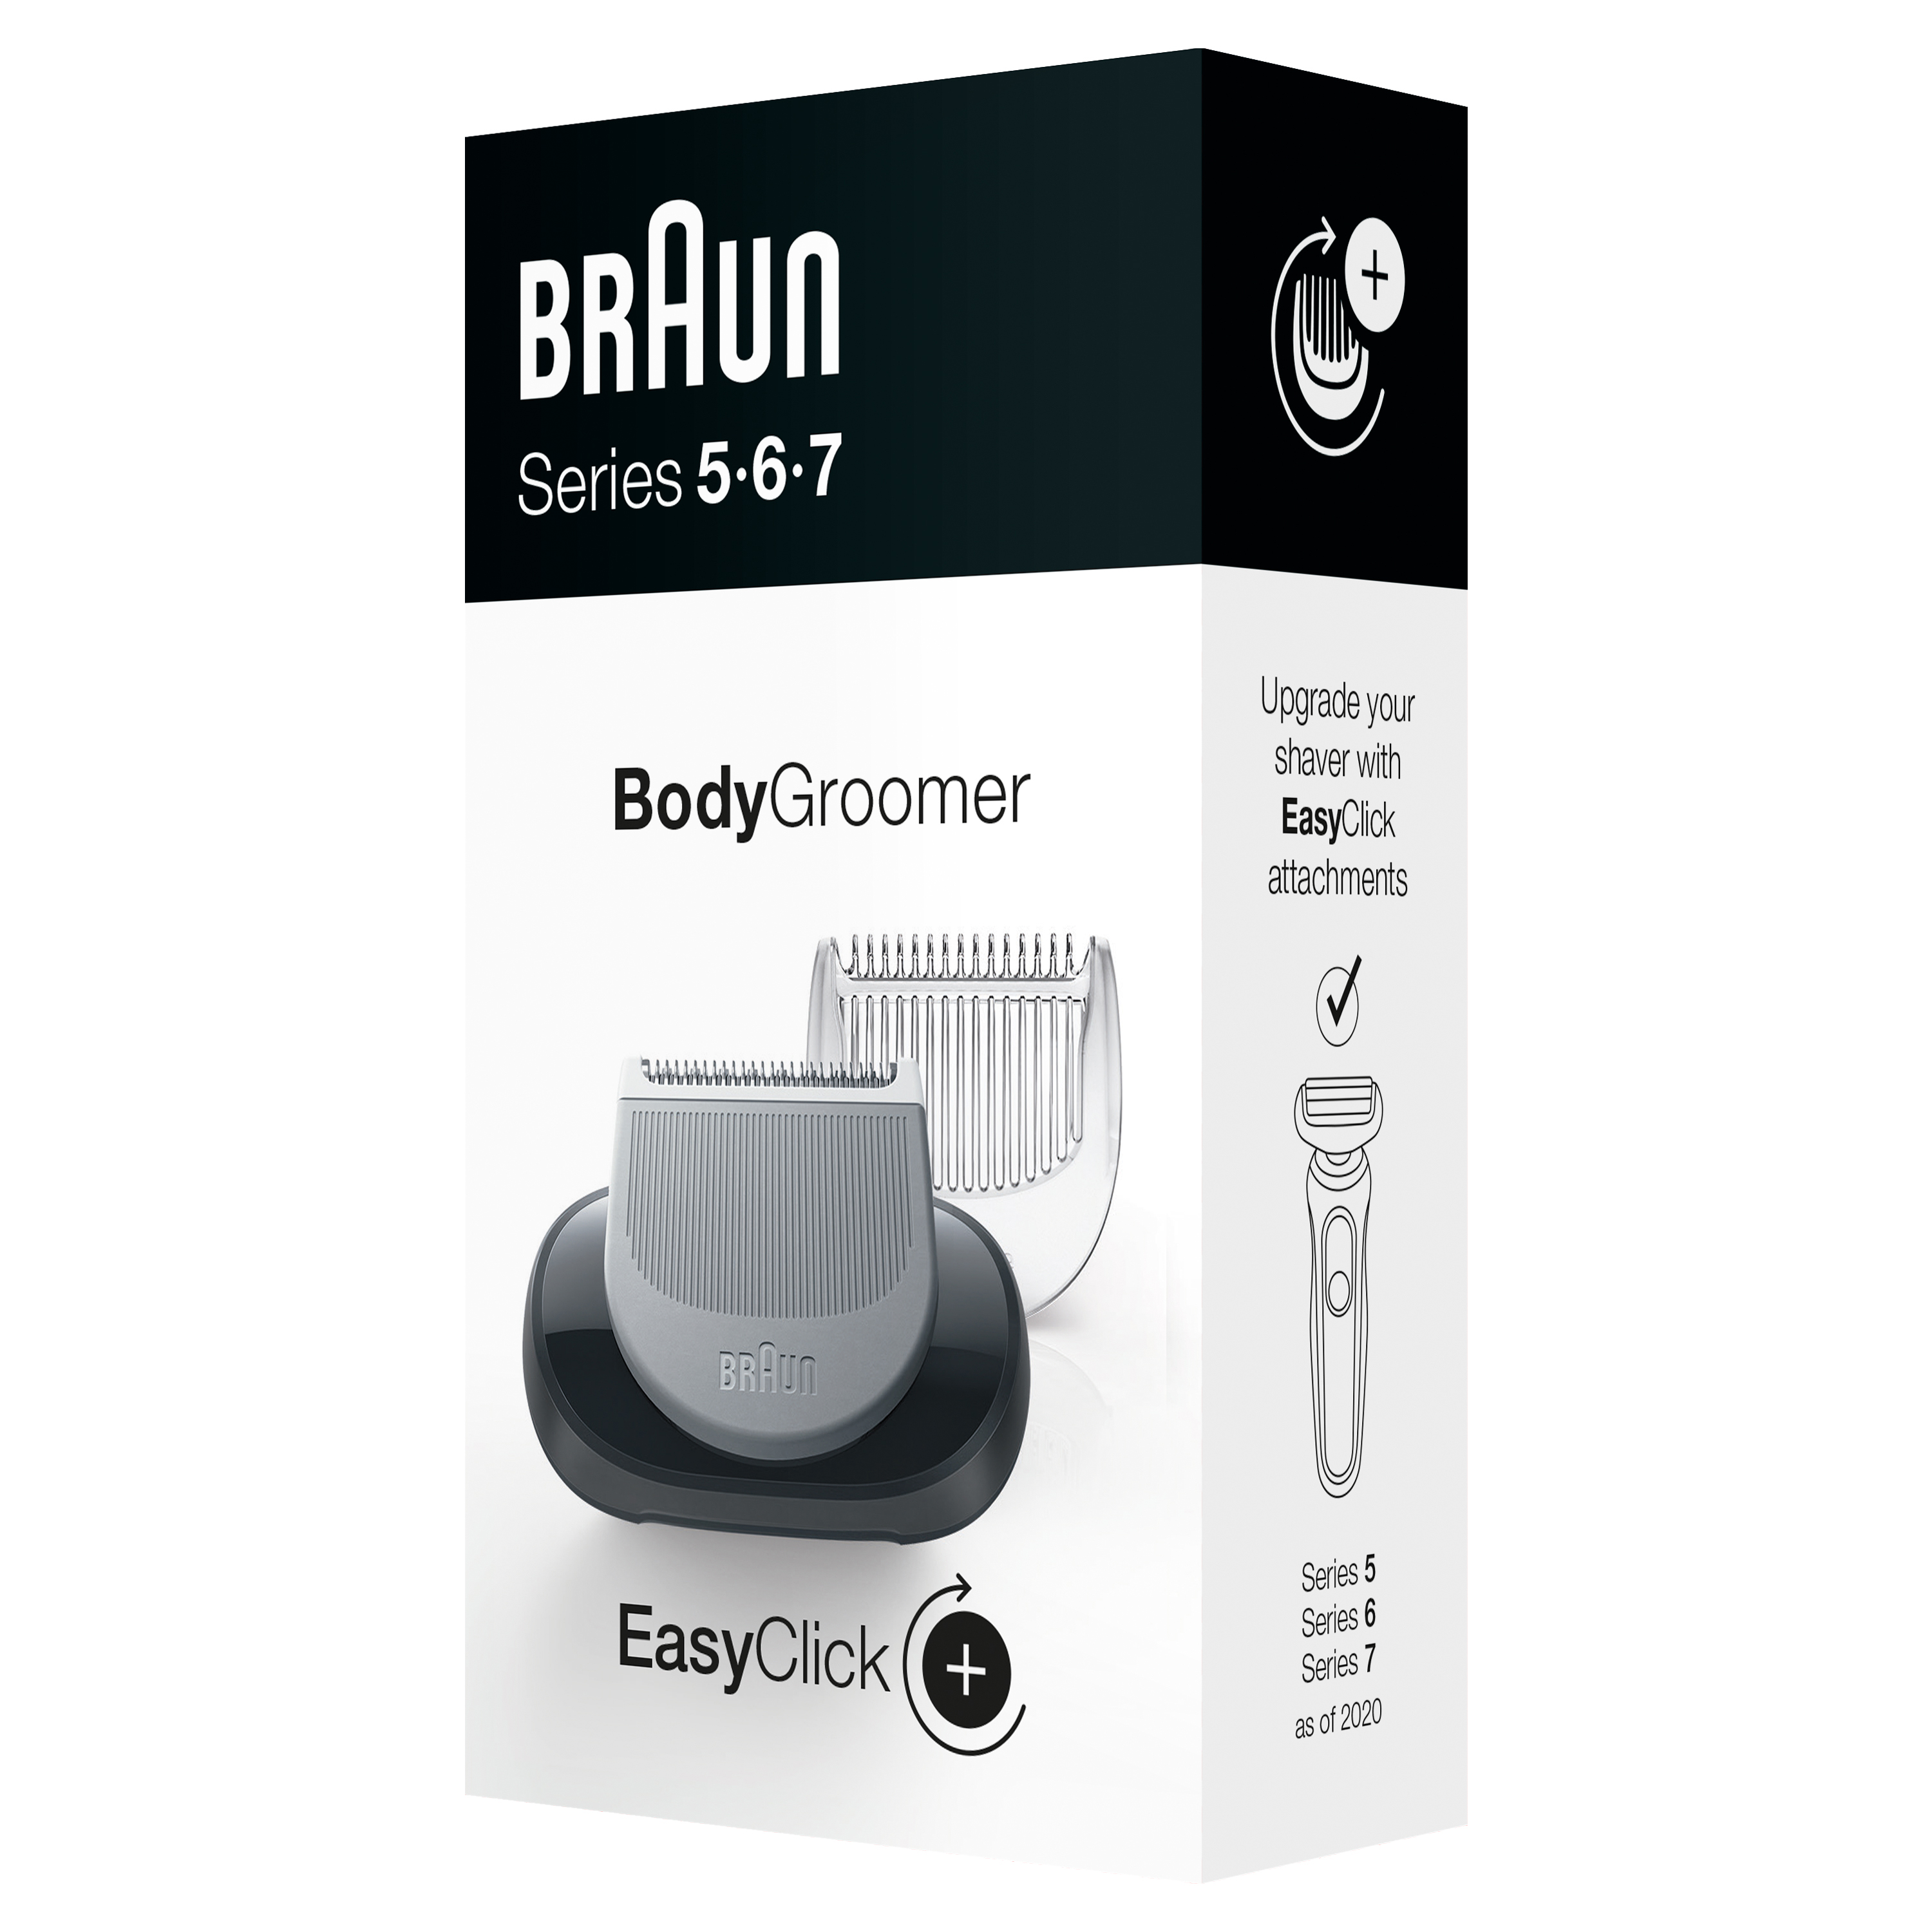 EasyClick Body Groomer attachment for Braun Series 5, 6 and 7 electric shaver